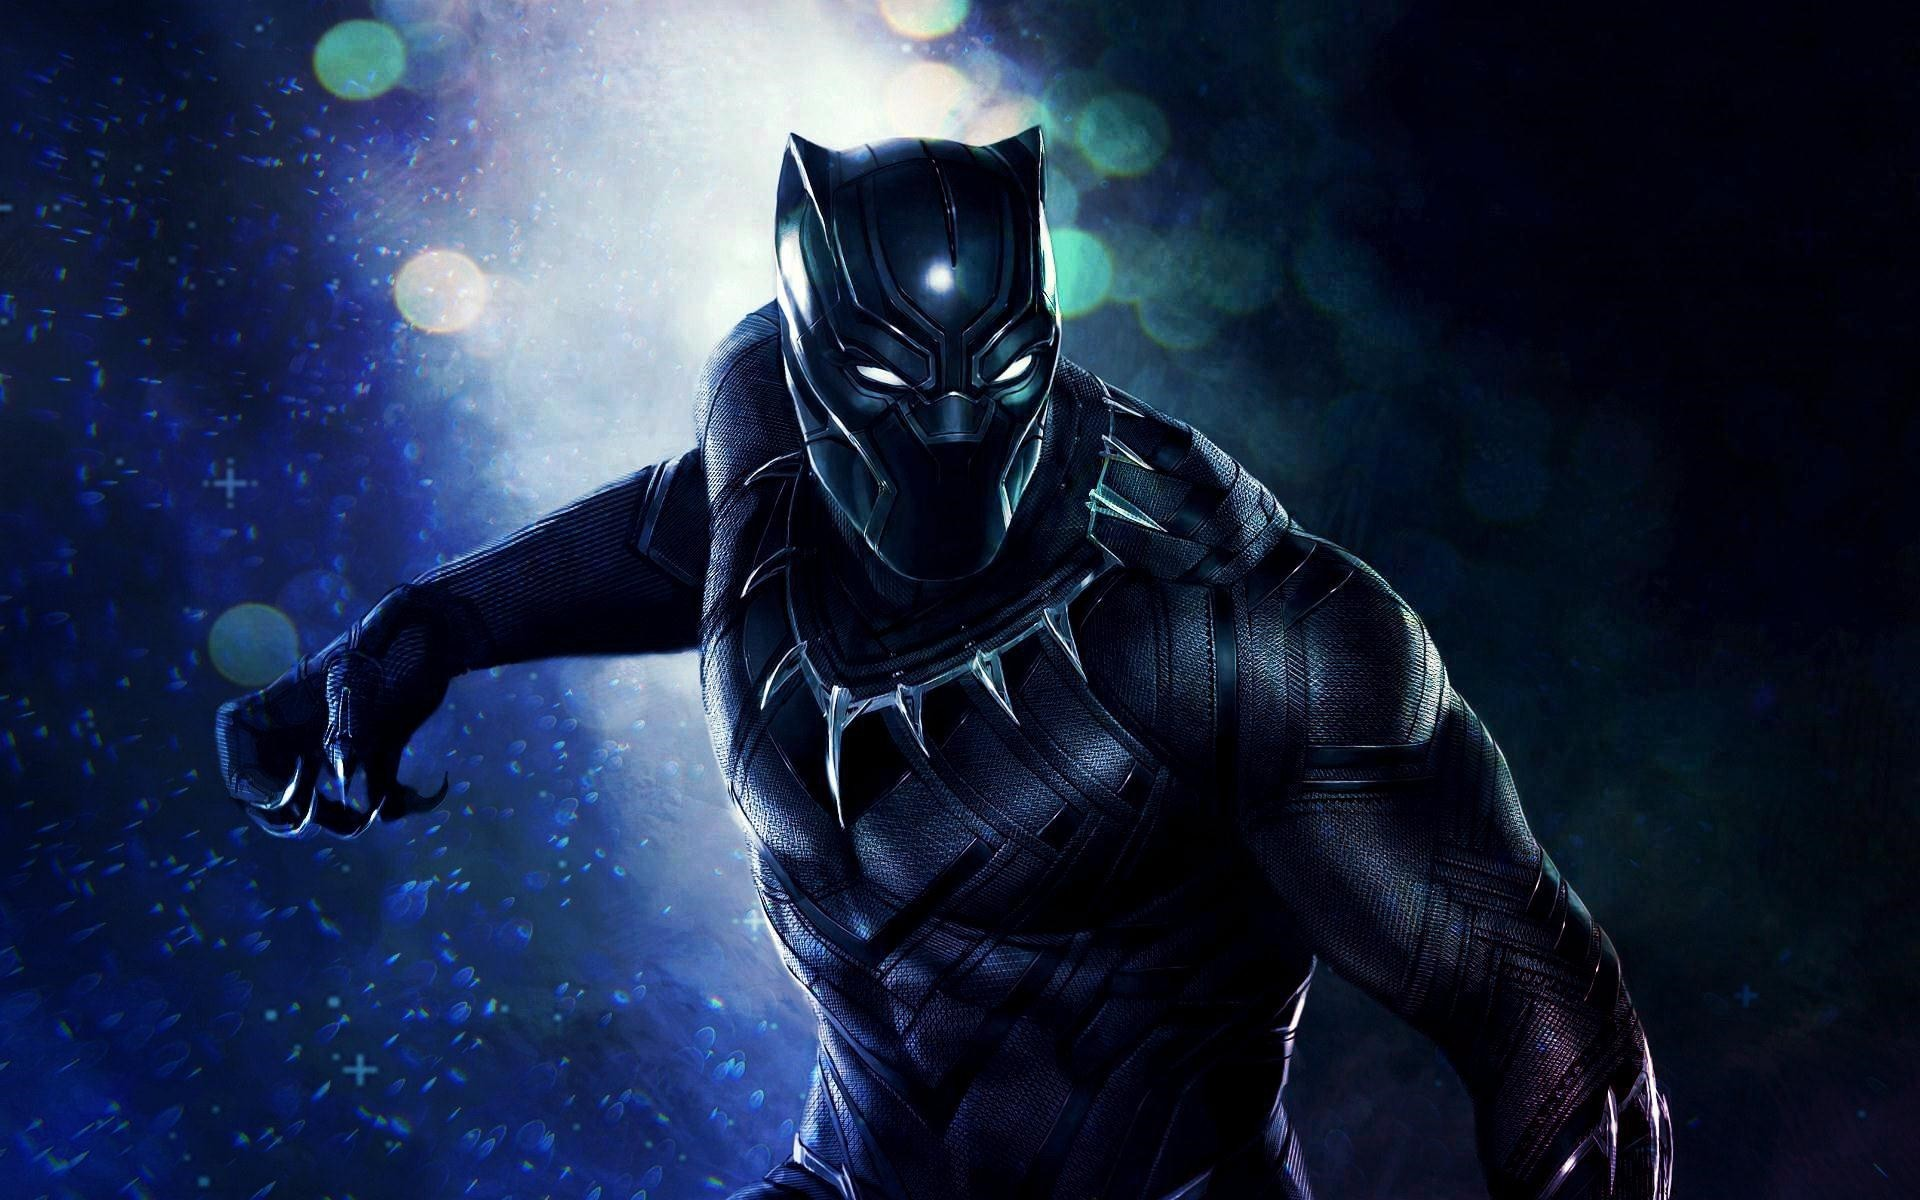 Movie Wallpaper: Marvel Black Panther Wallpaper 1080p HD Quality .